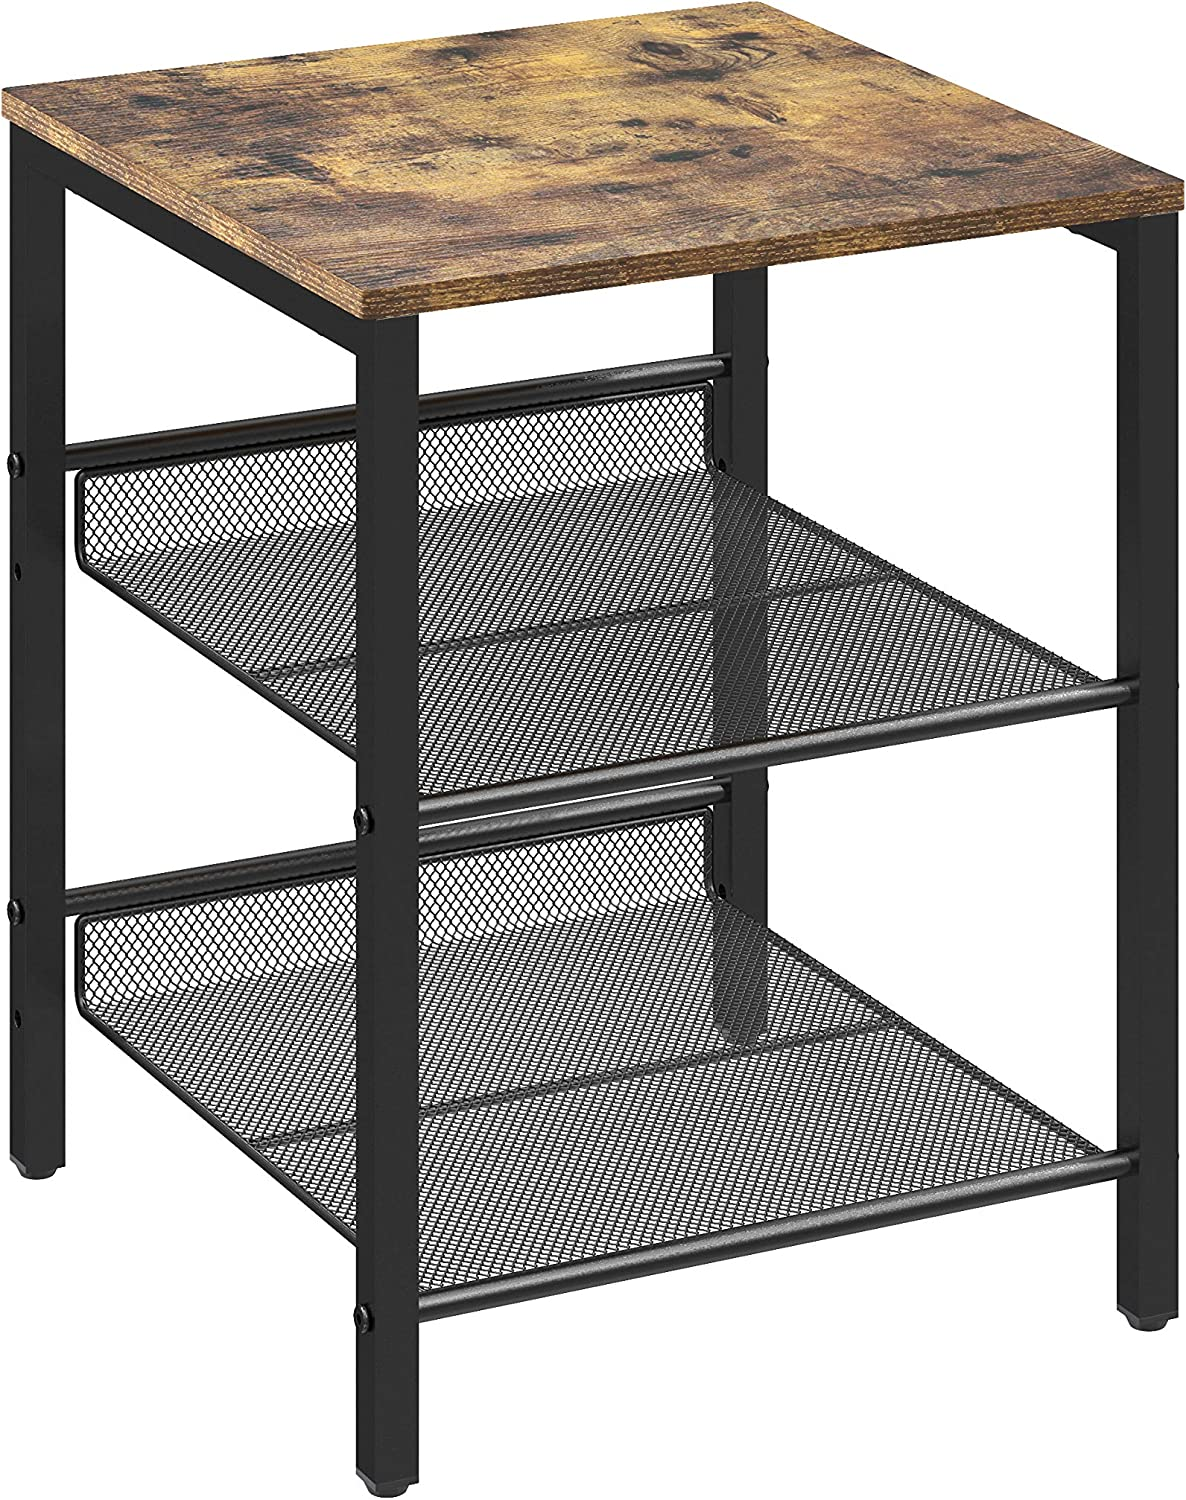 Yusong Industrial End Table,Nightstand with Adjustable Mesh Shelves,Side Table for Bedroom and Living Room,Rustic Brown